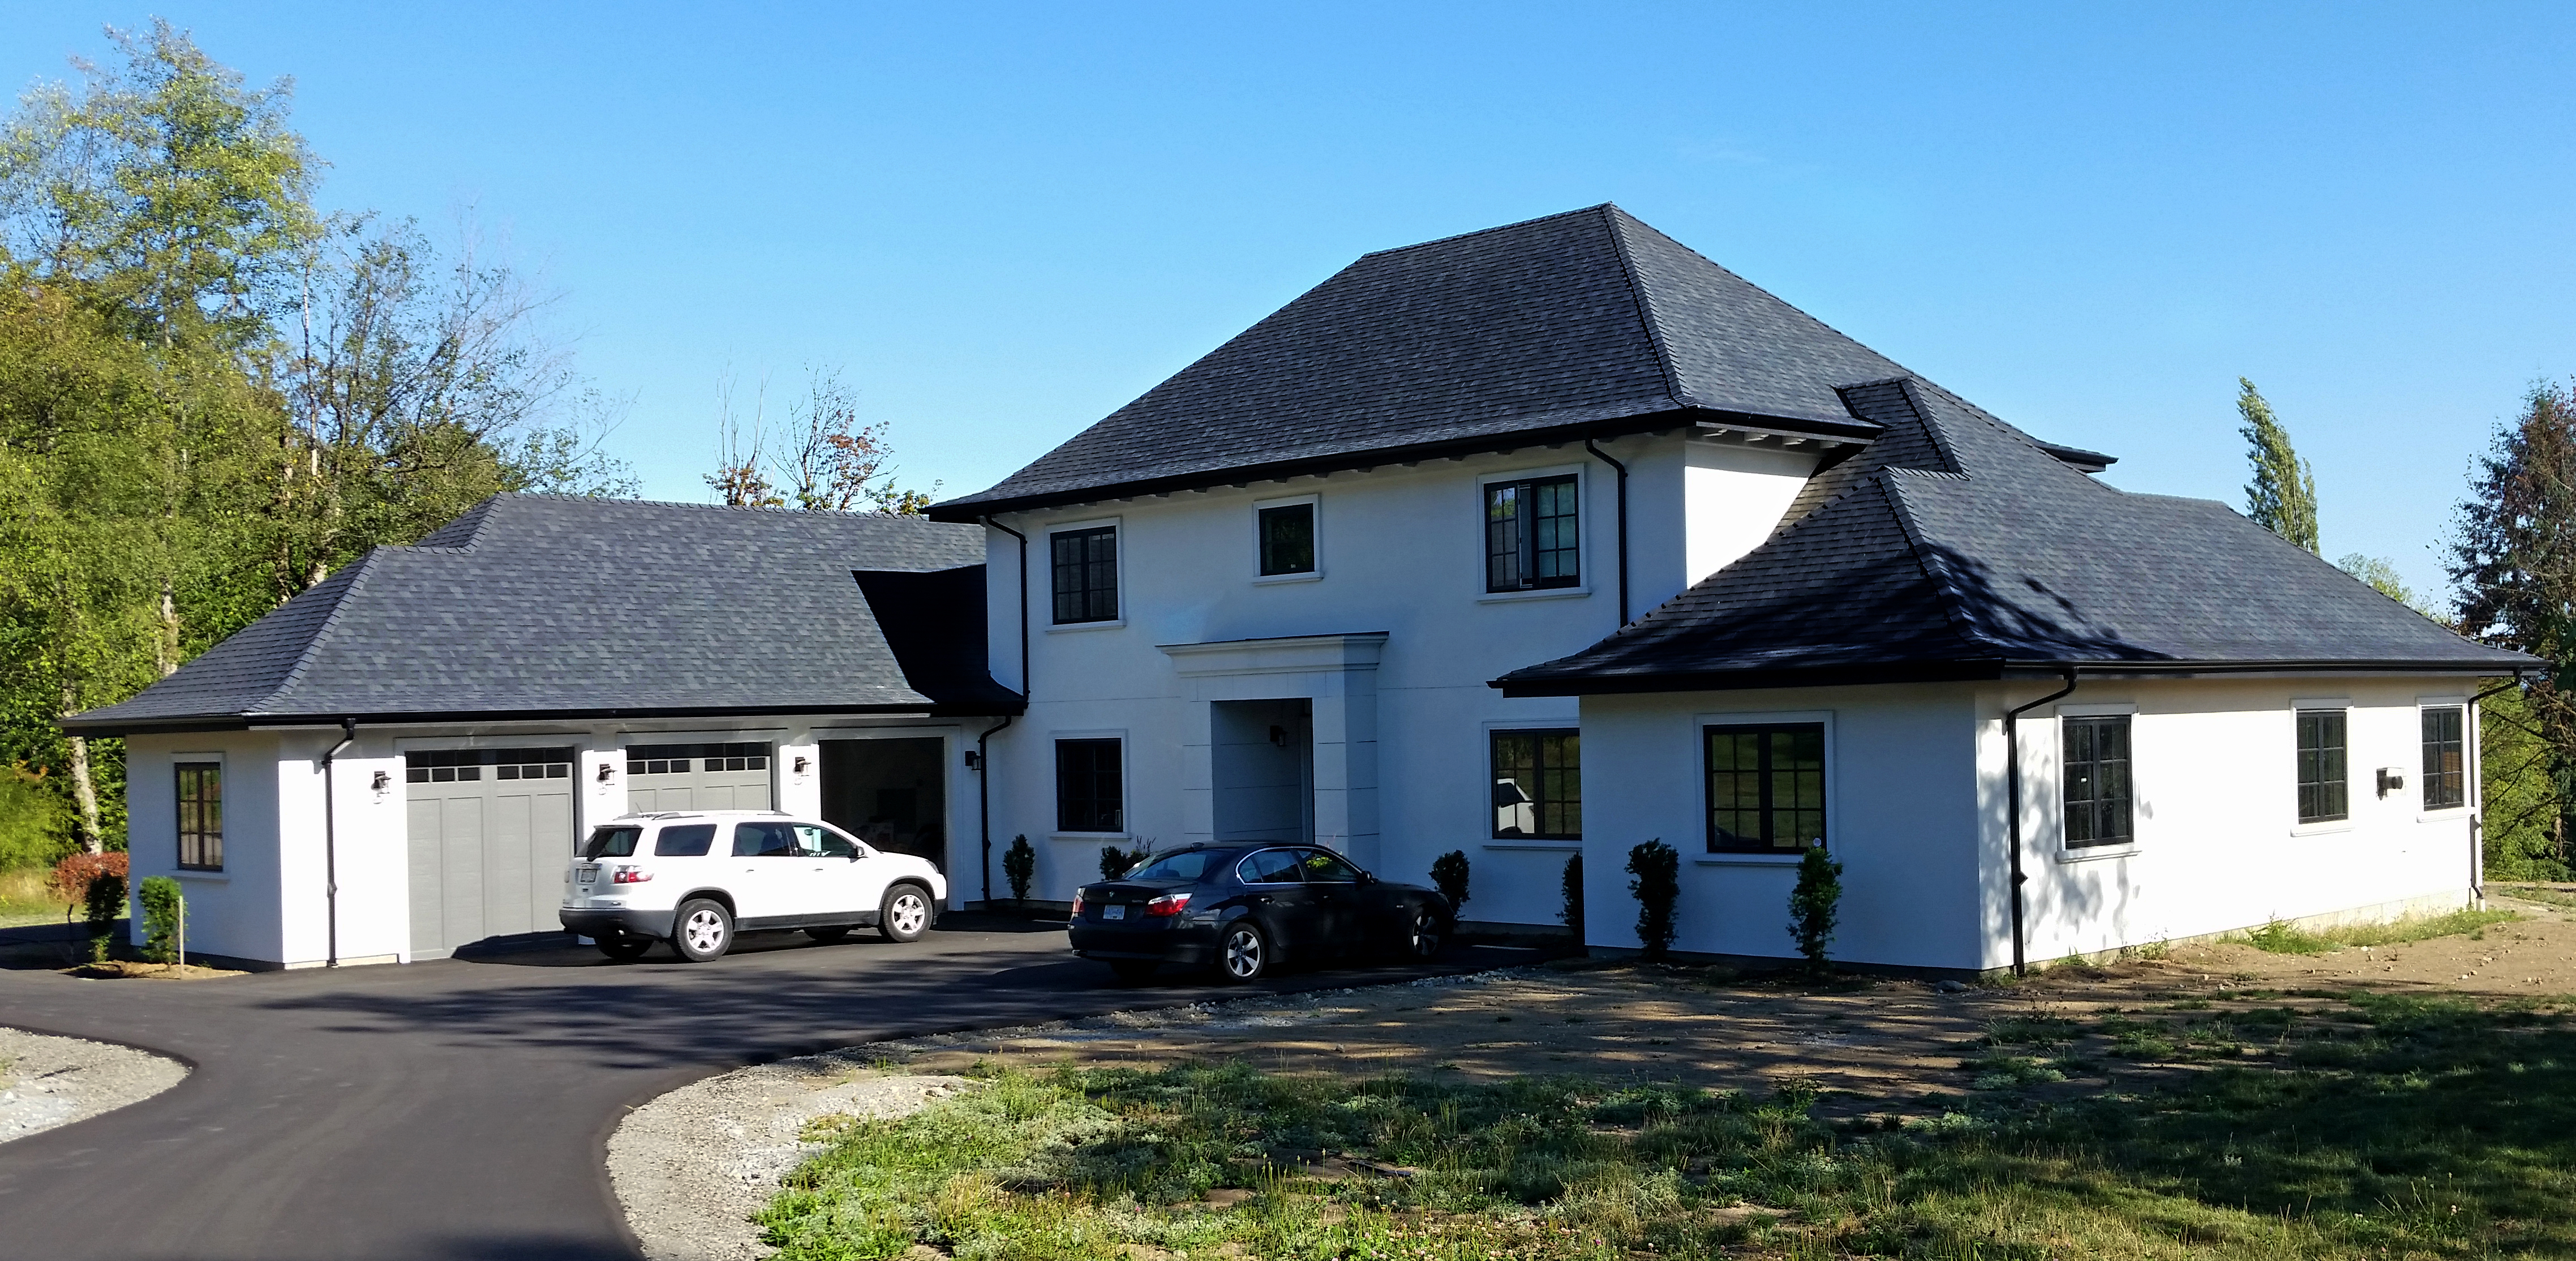 Maple Ridge Shingle Roof